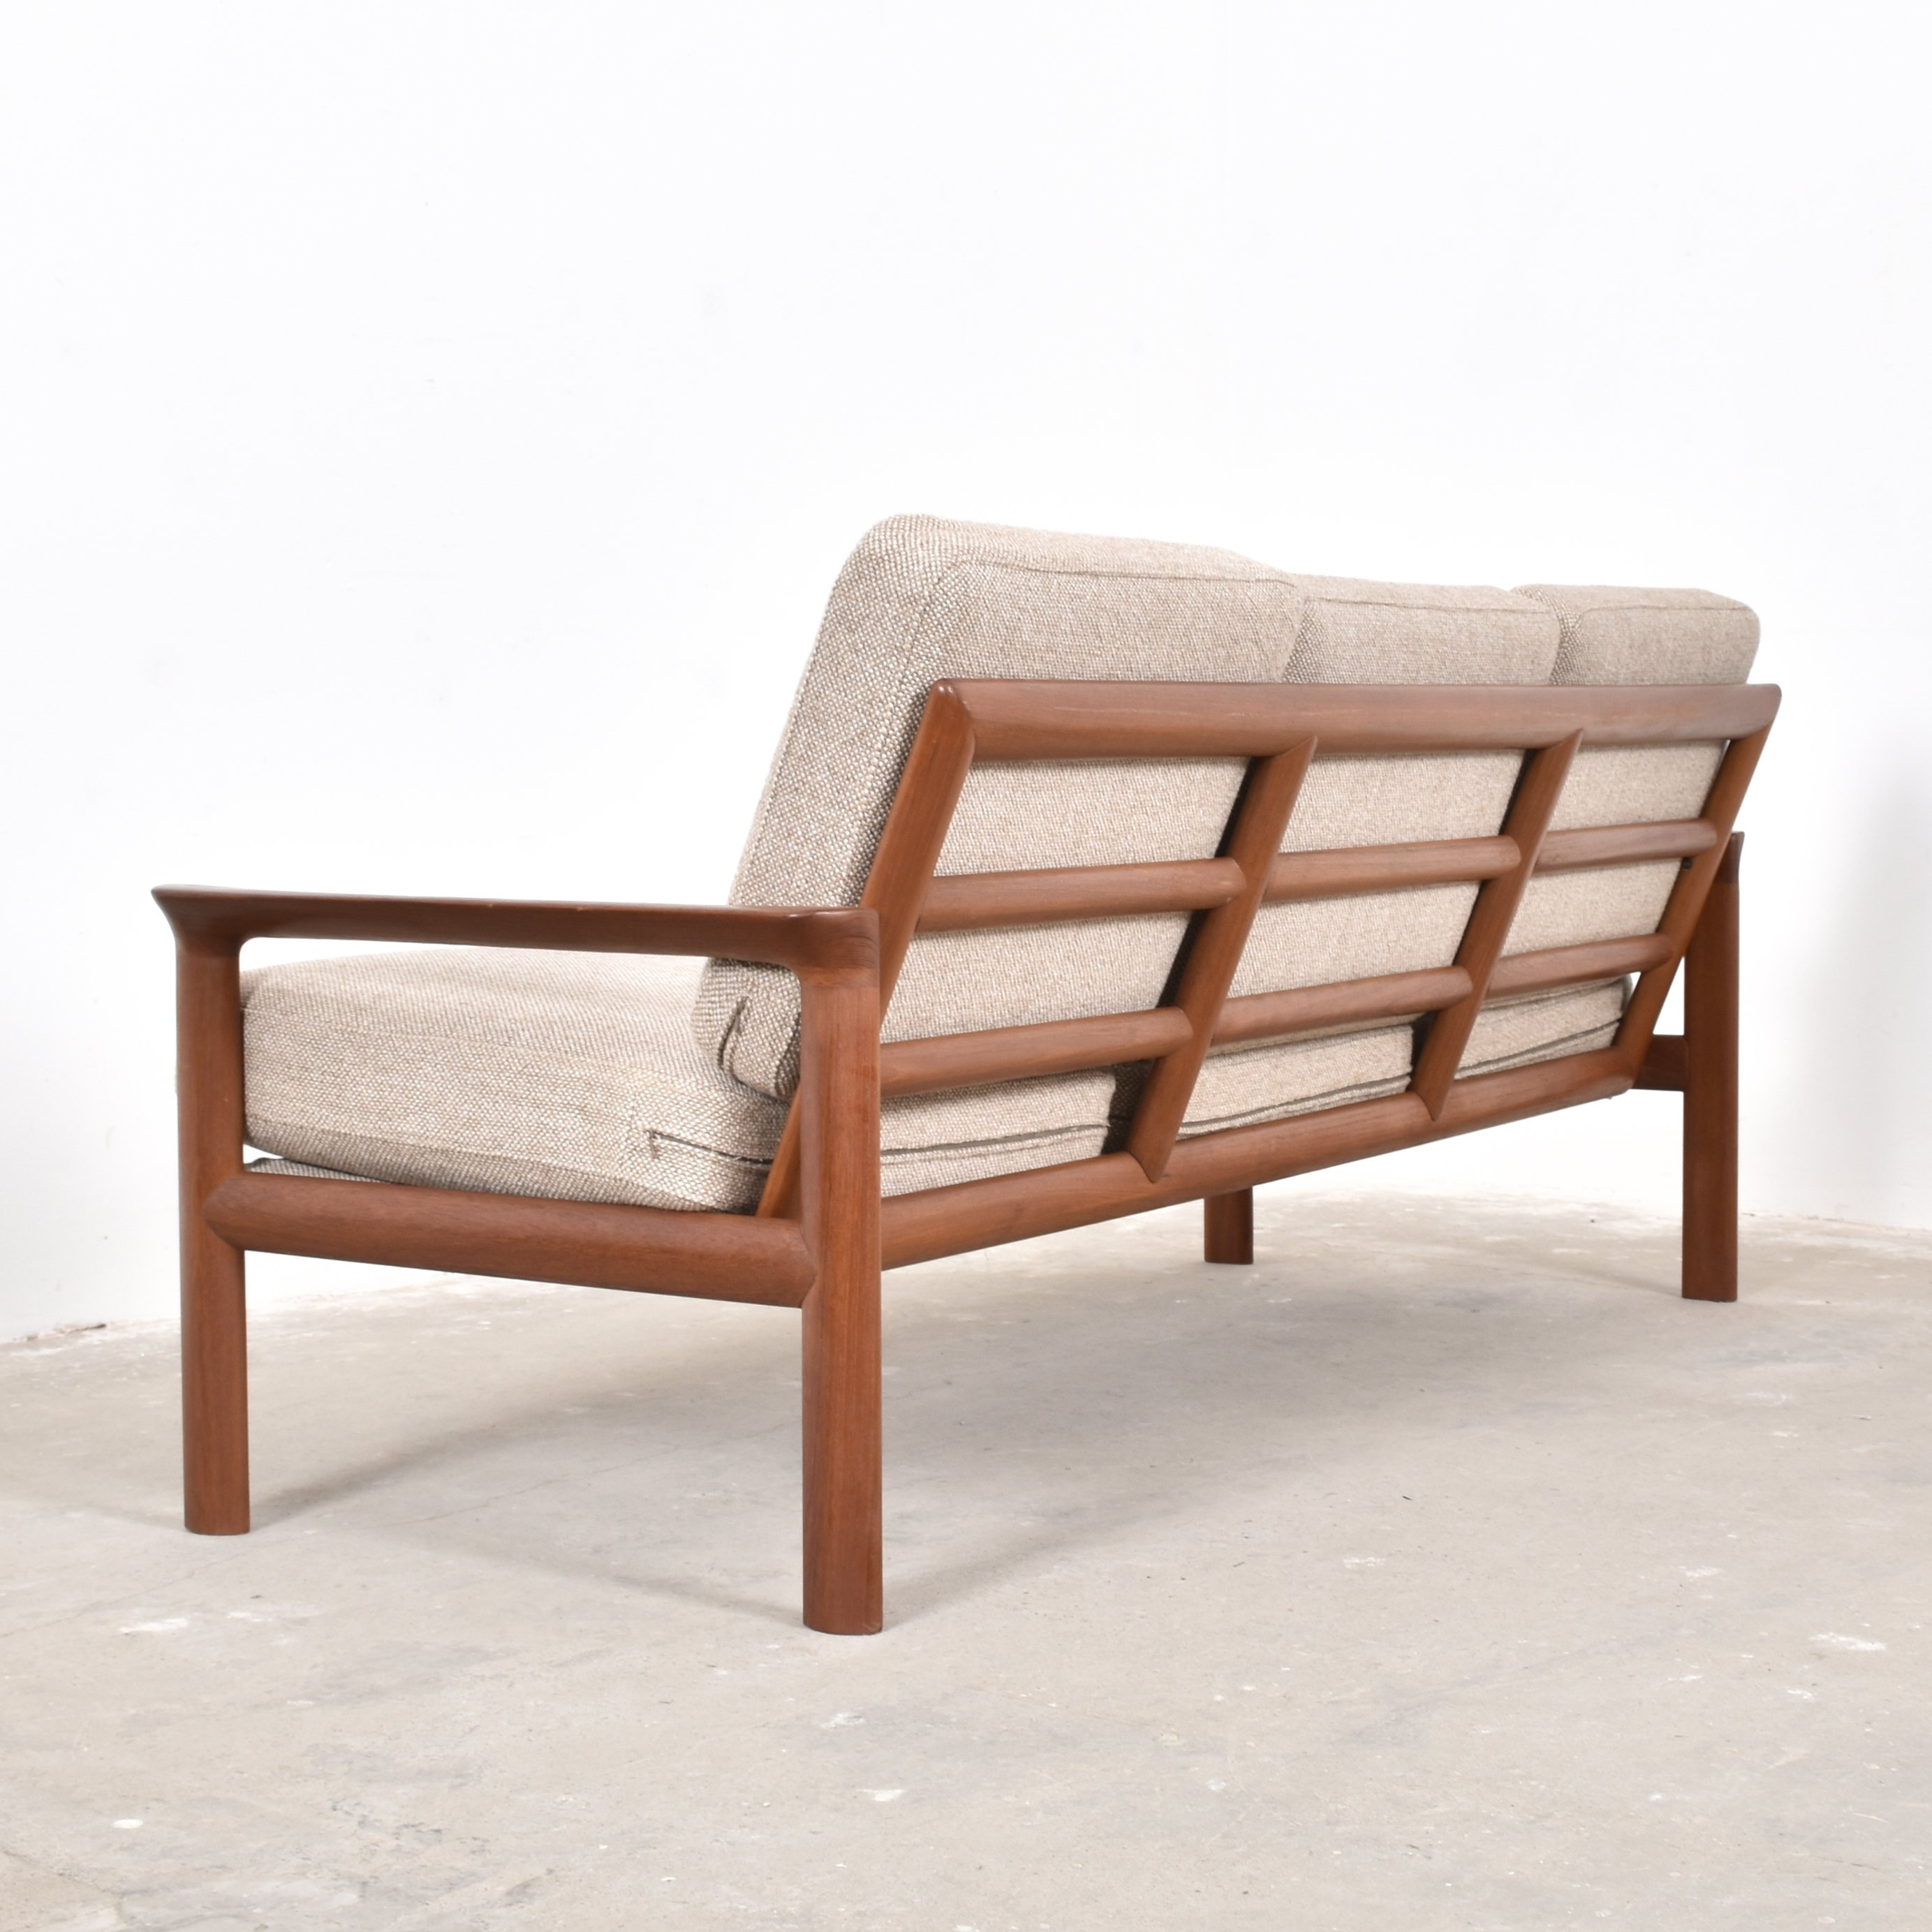 Marvelous Borneo Sofa By Sven Ellekaer For Komfort 1950S 59230 Gmtry Best Dining Table And Chair Ideas Images Gmtryco